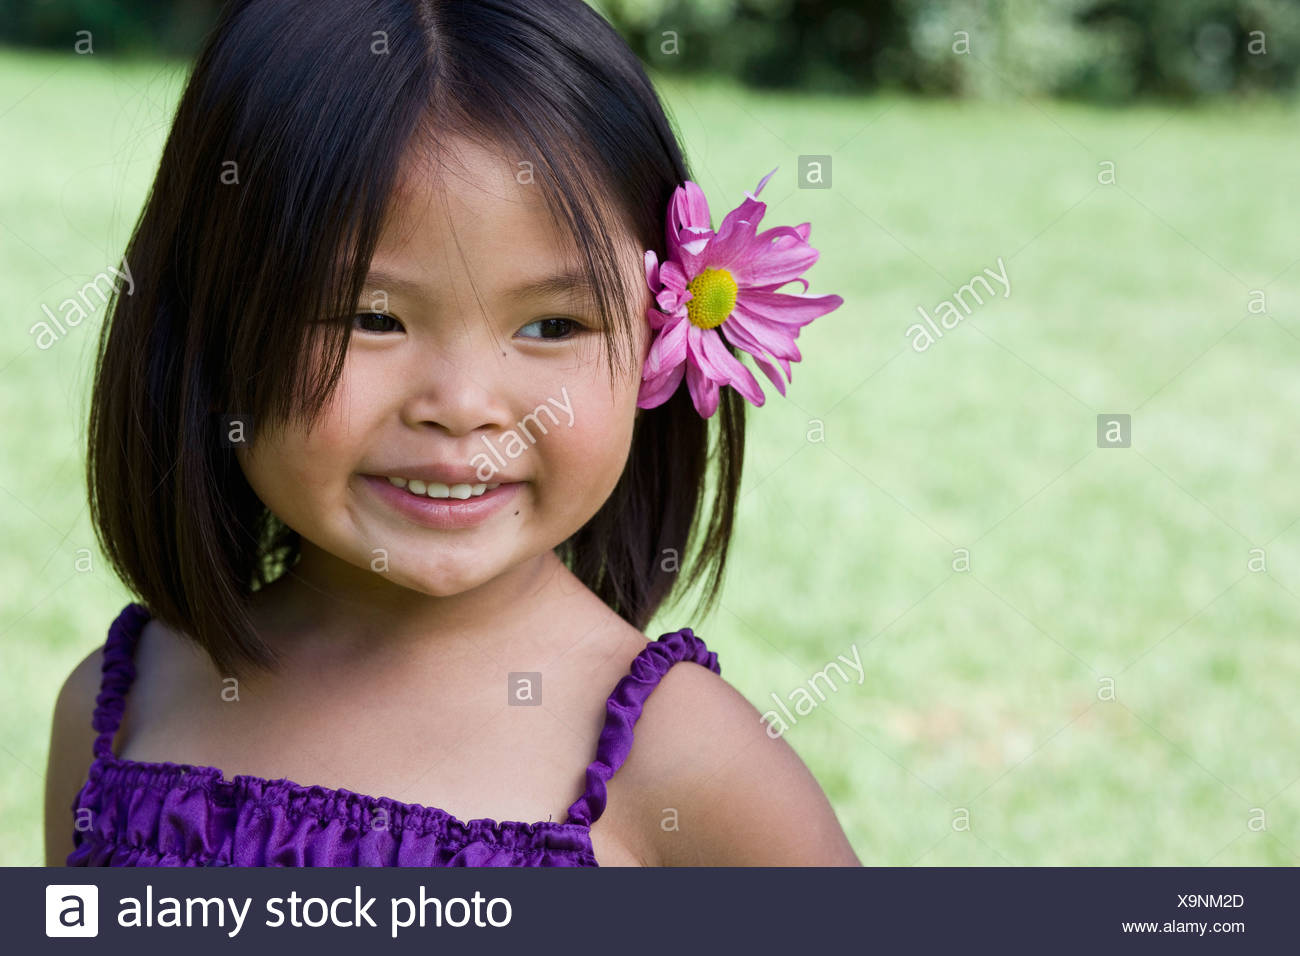 A Young Girl With A Flower Behind Her Ear Stock Photo 281374533 Alamy